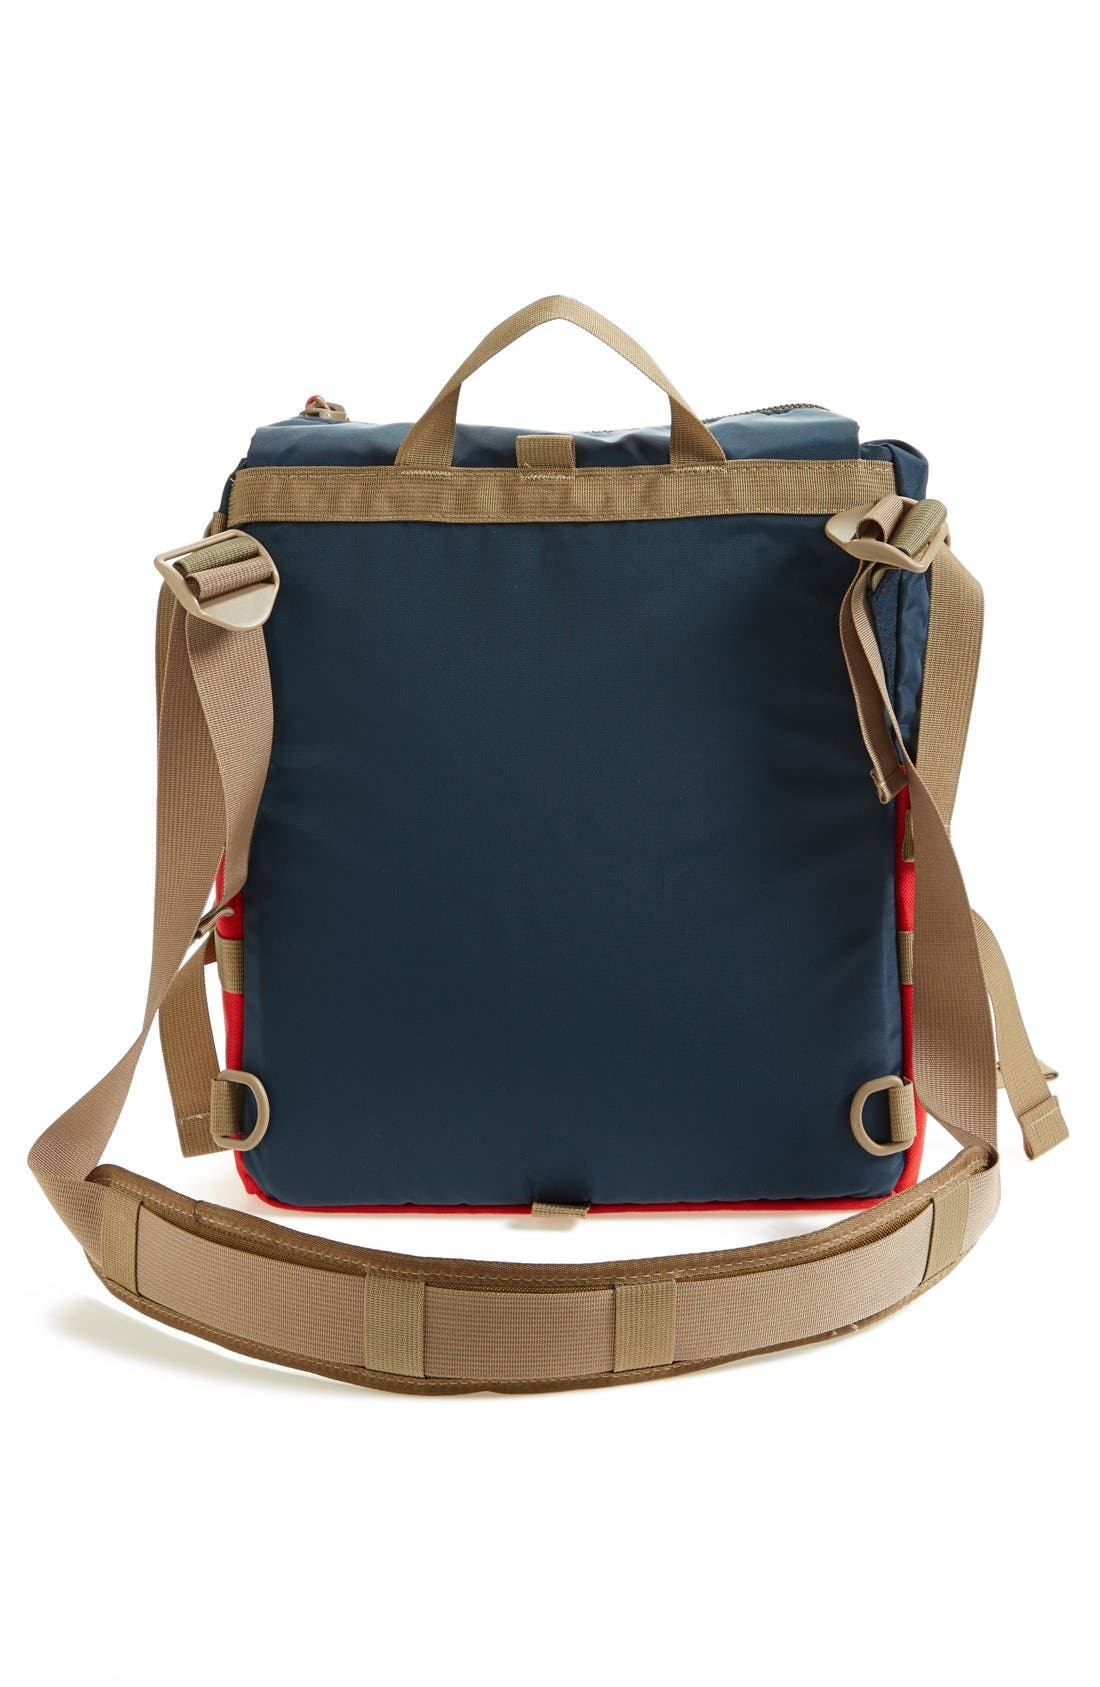 'Rover' Shoulder Bag,                             Alternate thumbnail 4, color,                             410